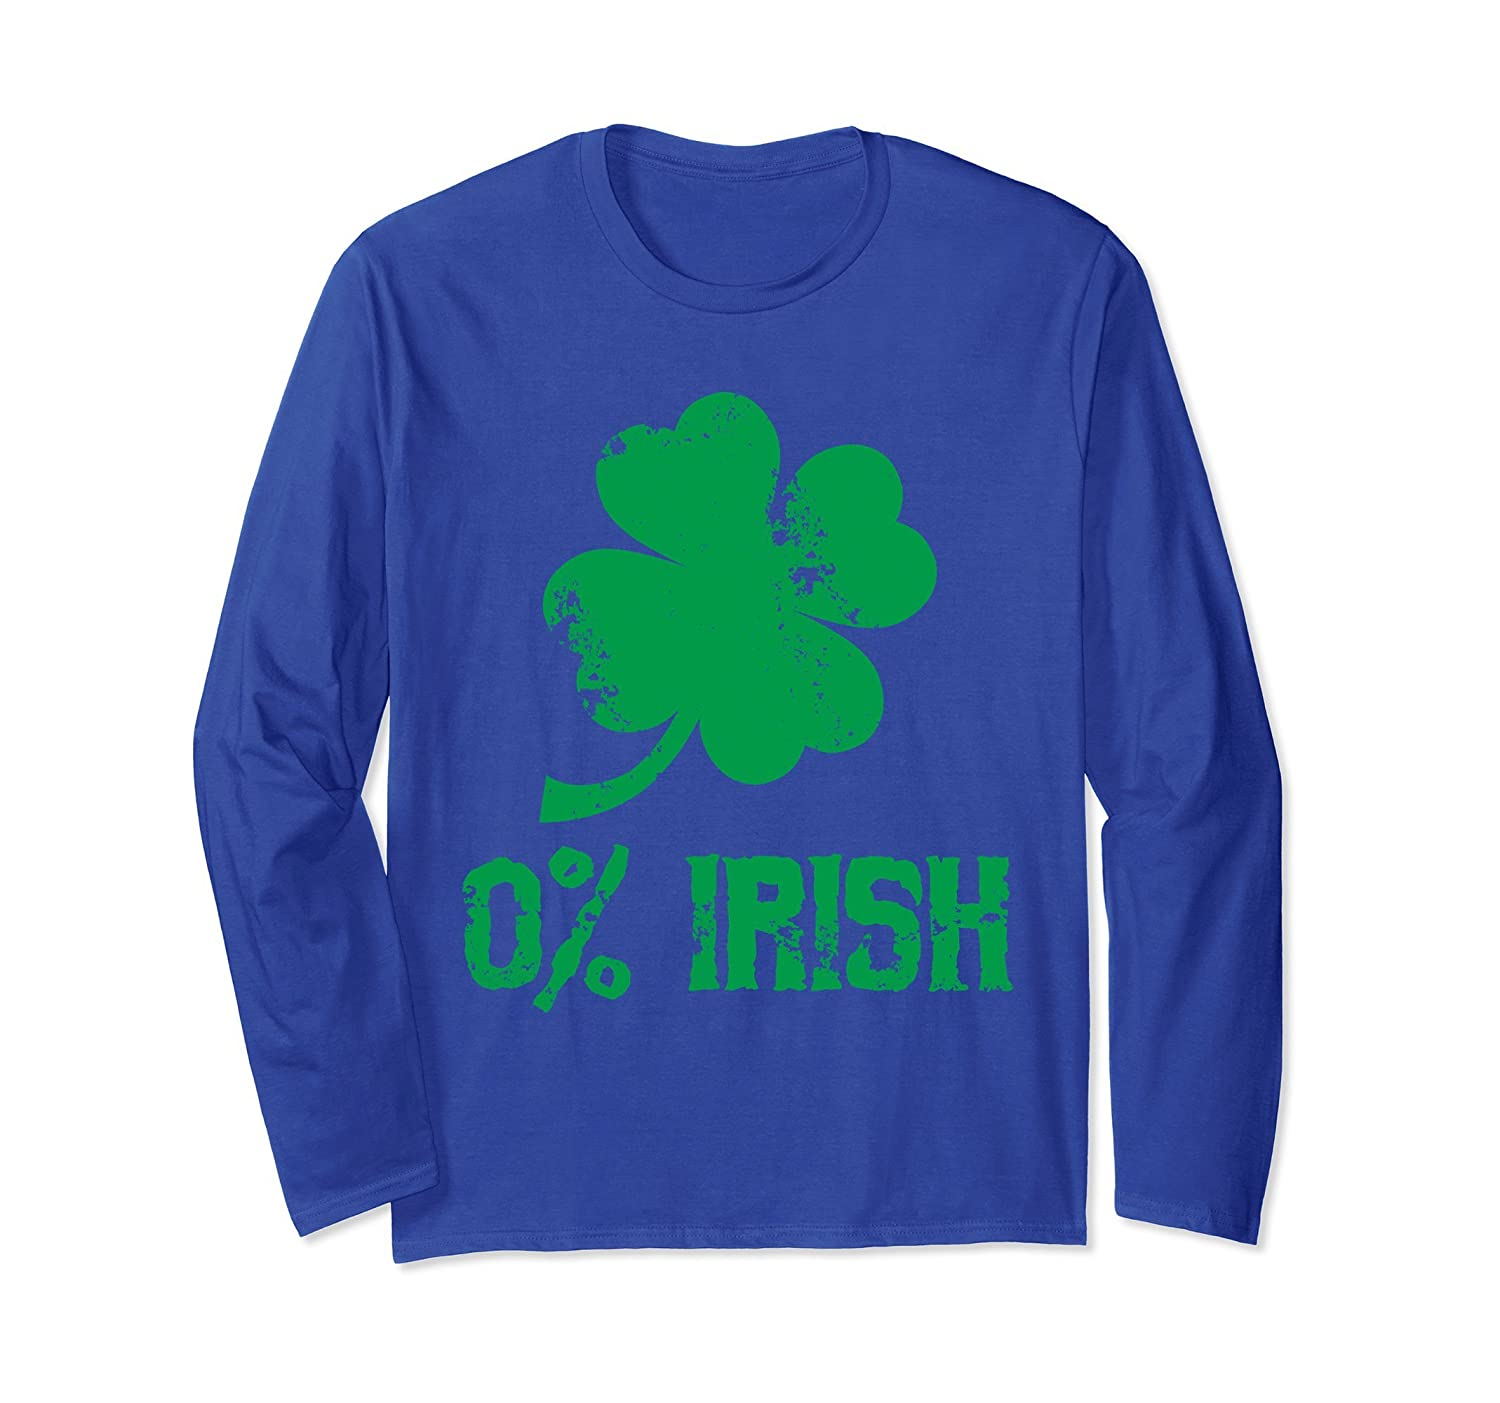 0% Irish Long Sleeve Shirt - Funny St Patrick's Day Shirt-alottee gift